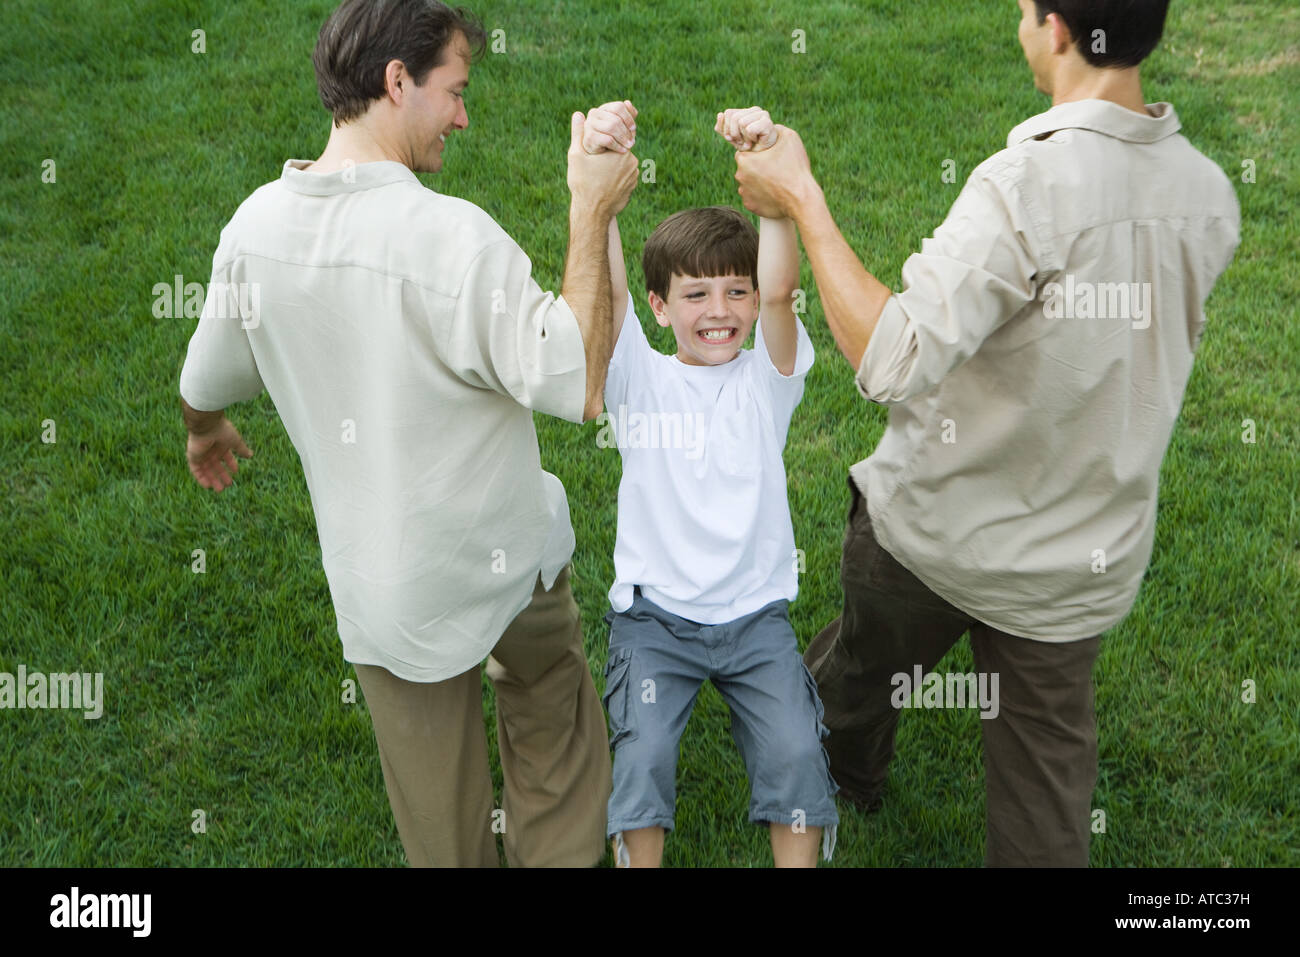 Two men carrying boy by his arms, high angle view - Stock Image